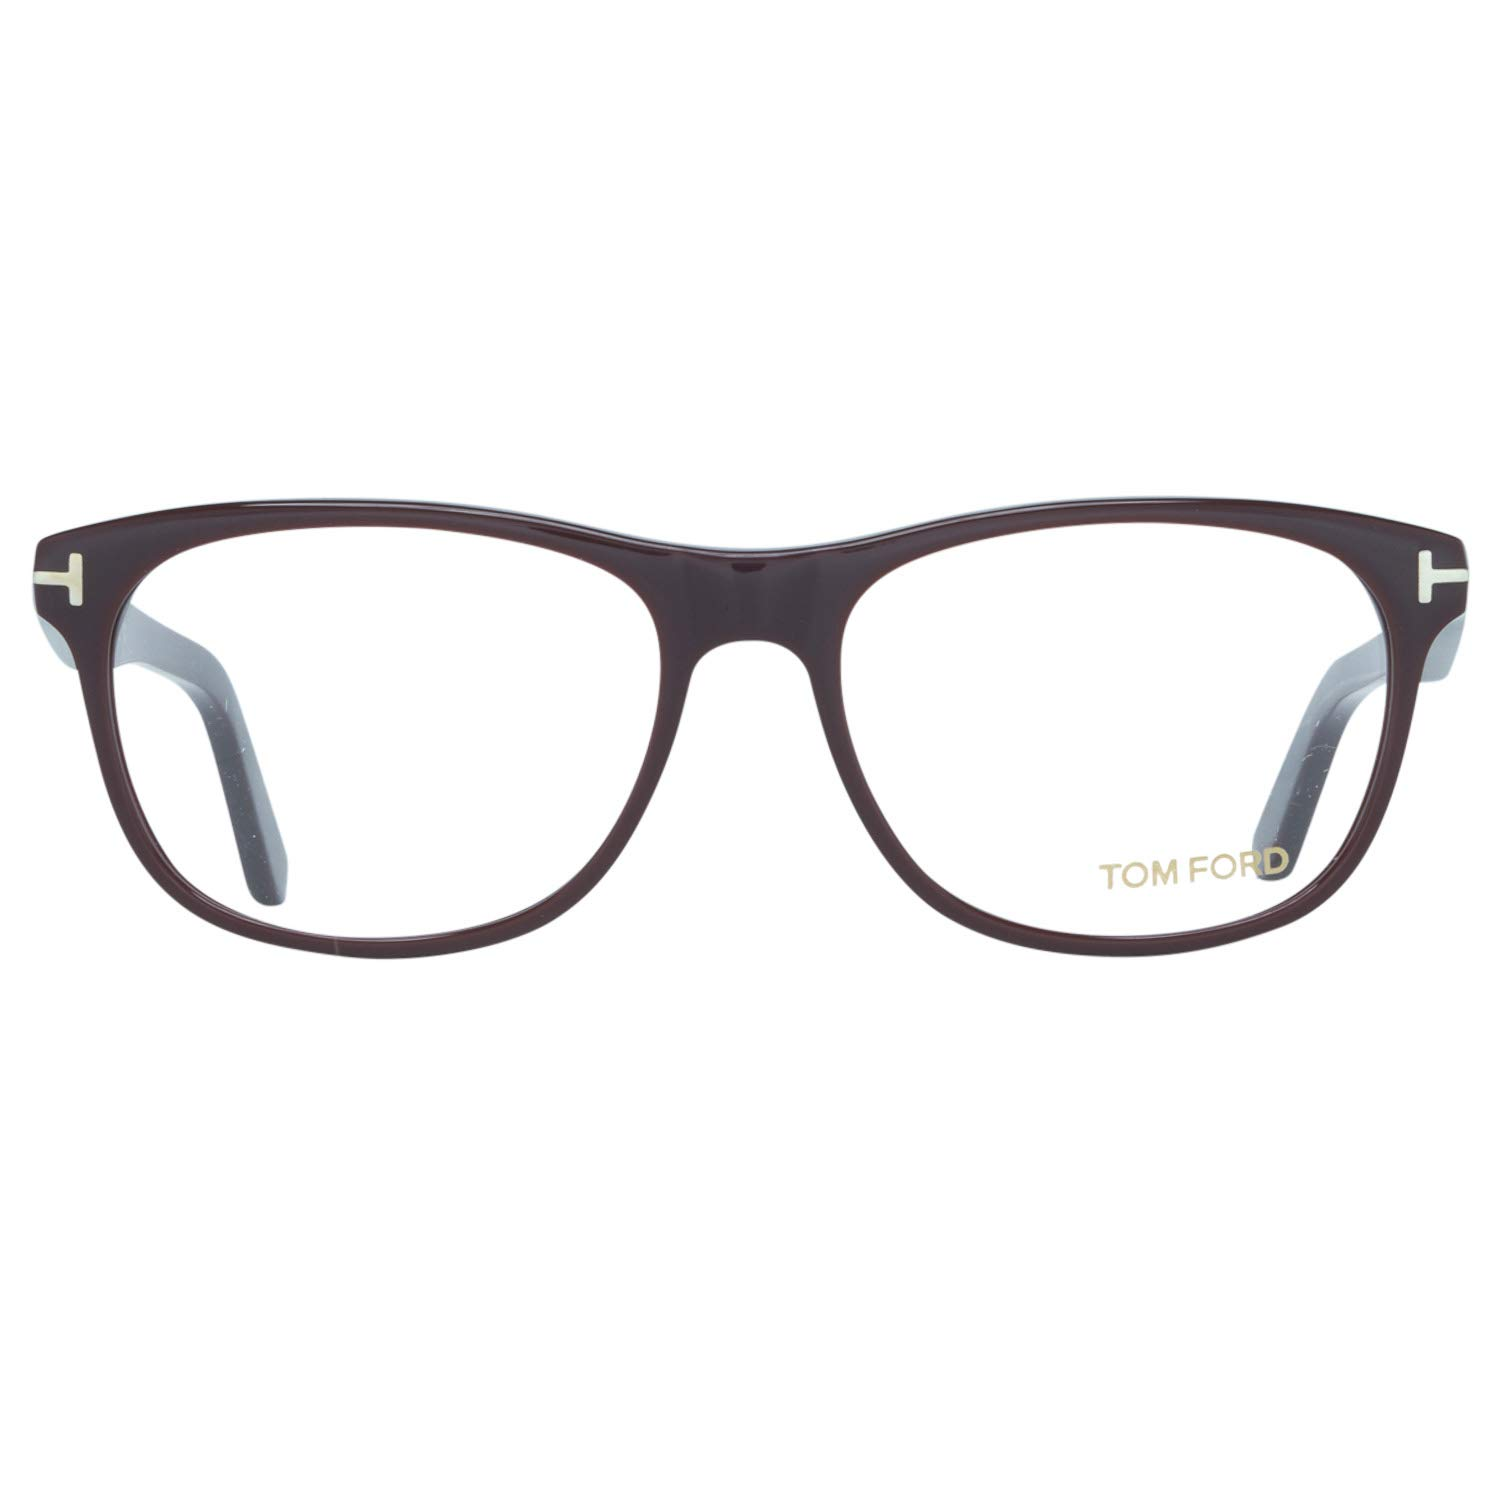 Ford Tom SoleilMarronbraunHomme Frame De 55 Optical Lunettes Ft5431 048 POZuTwilXk